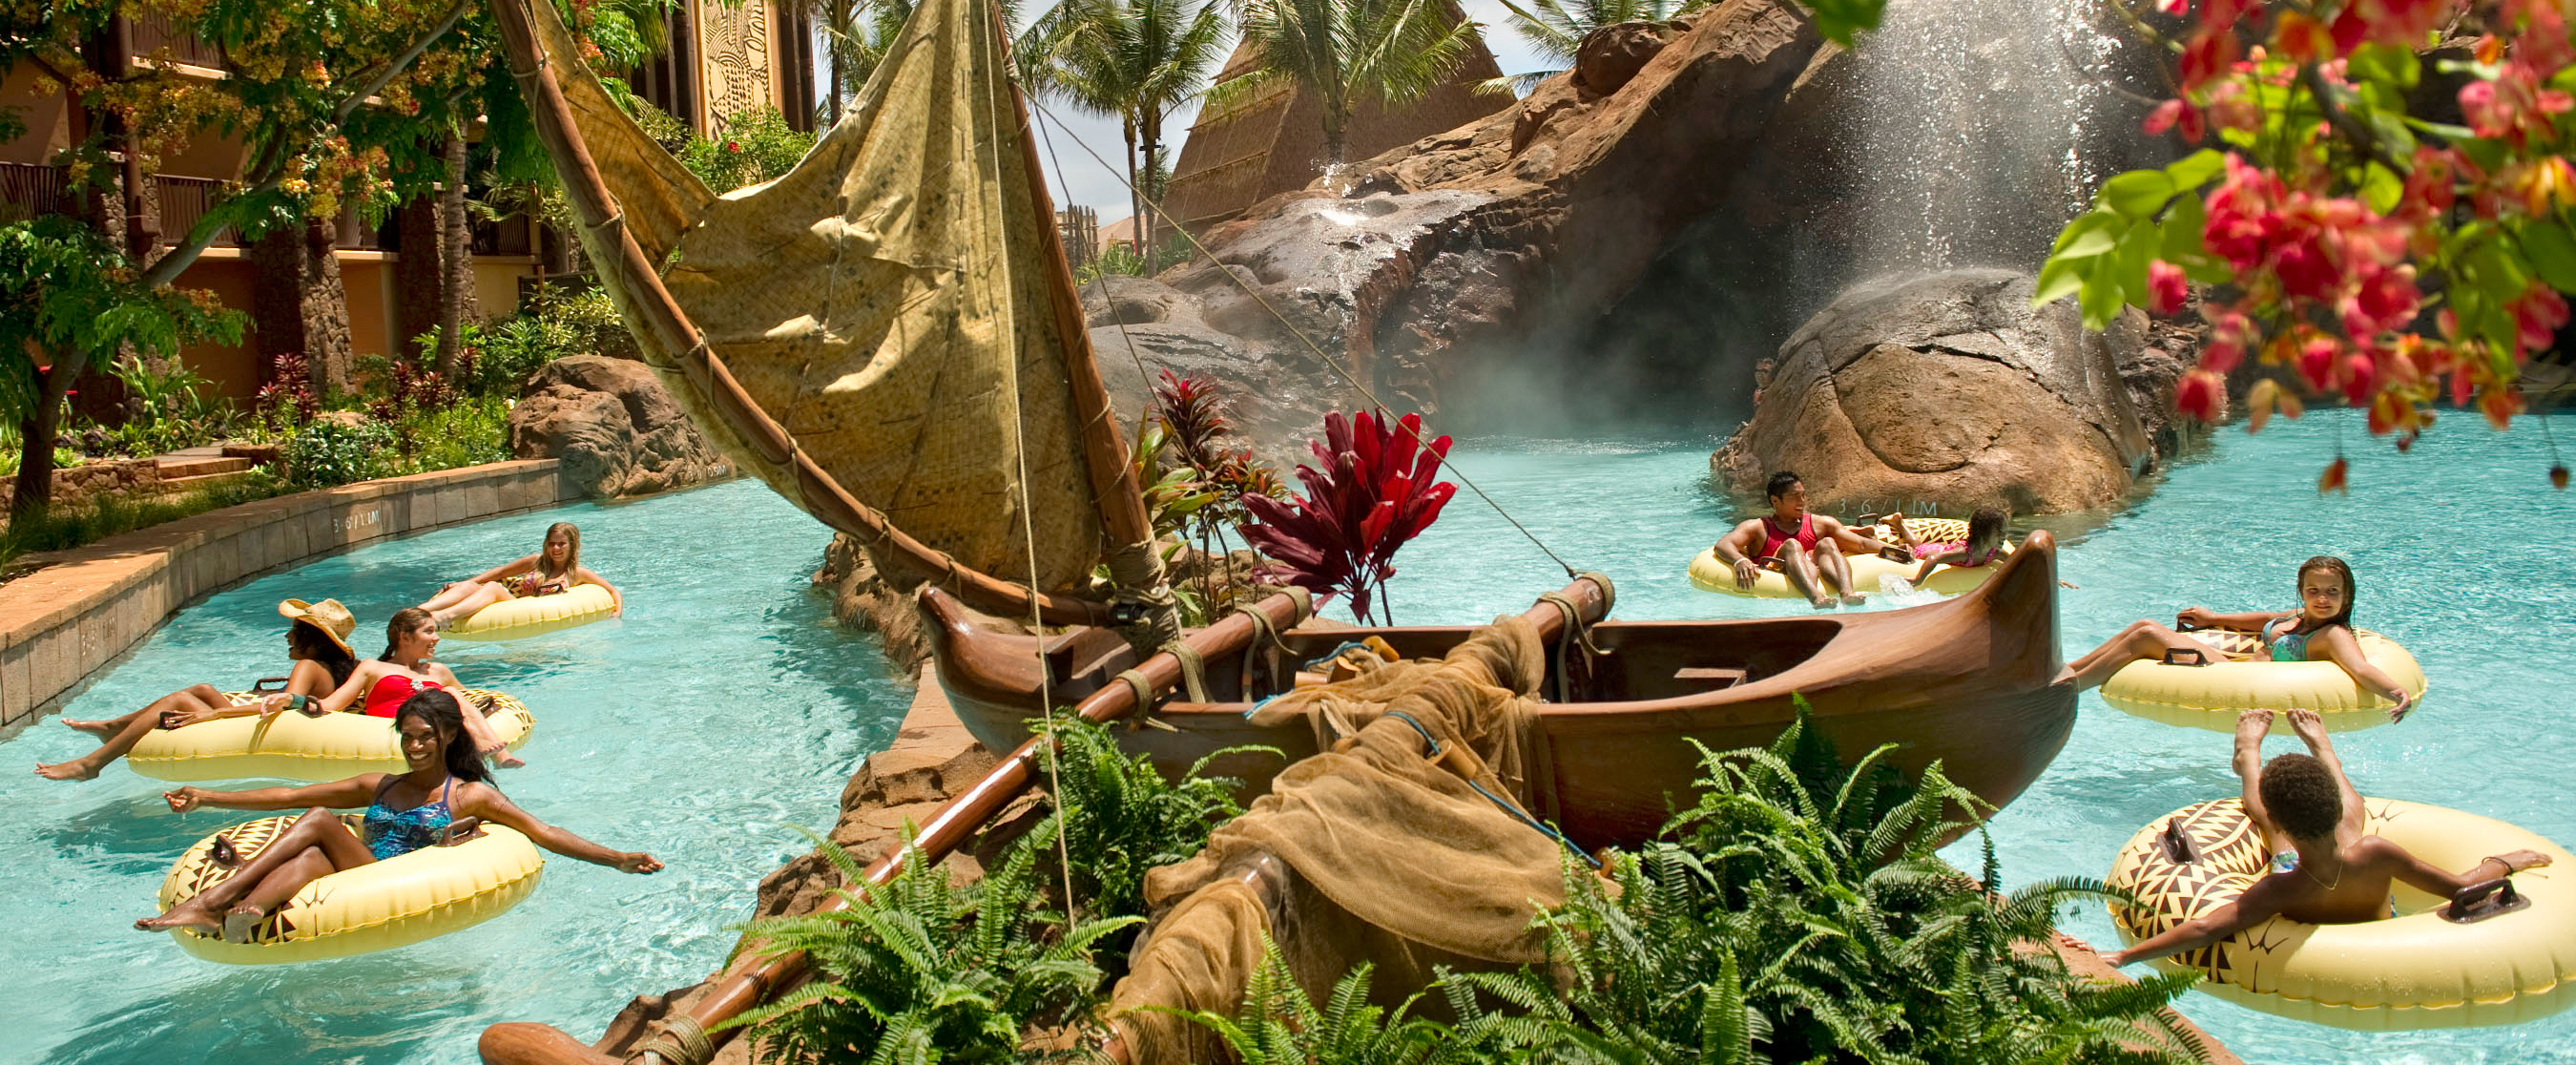 Guests tubing on the lazy river in the Aulani pool area